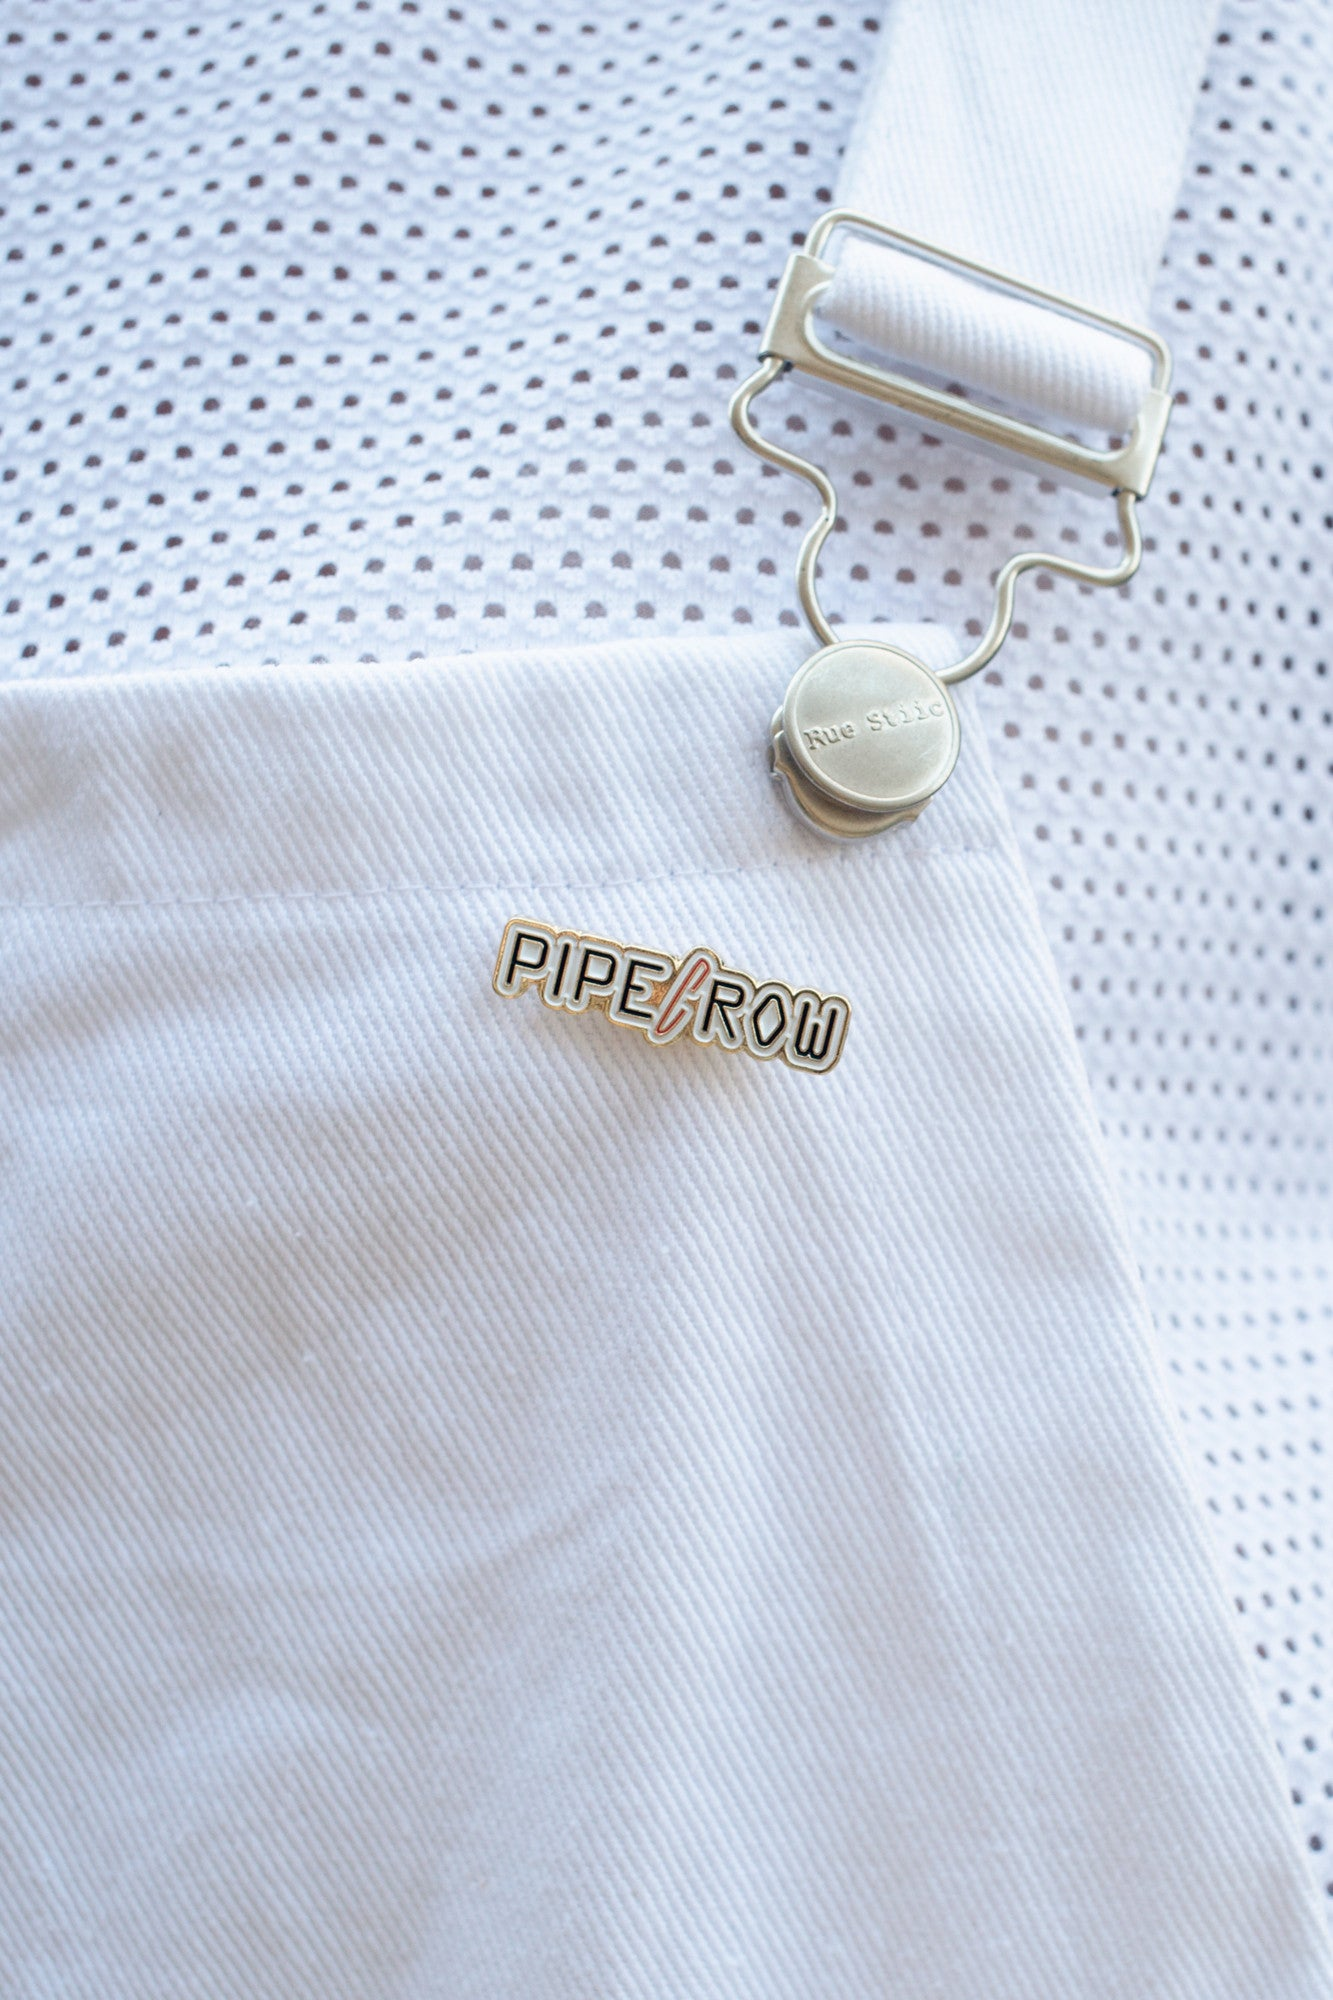 PIPE AND ROW ENAMEL PIN